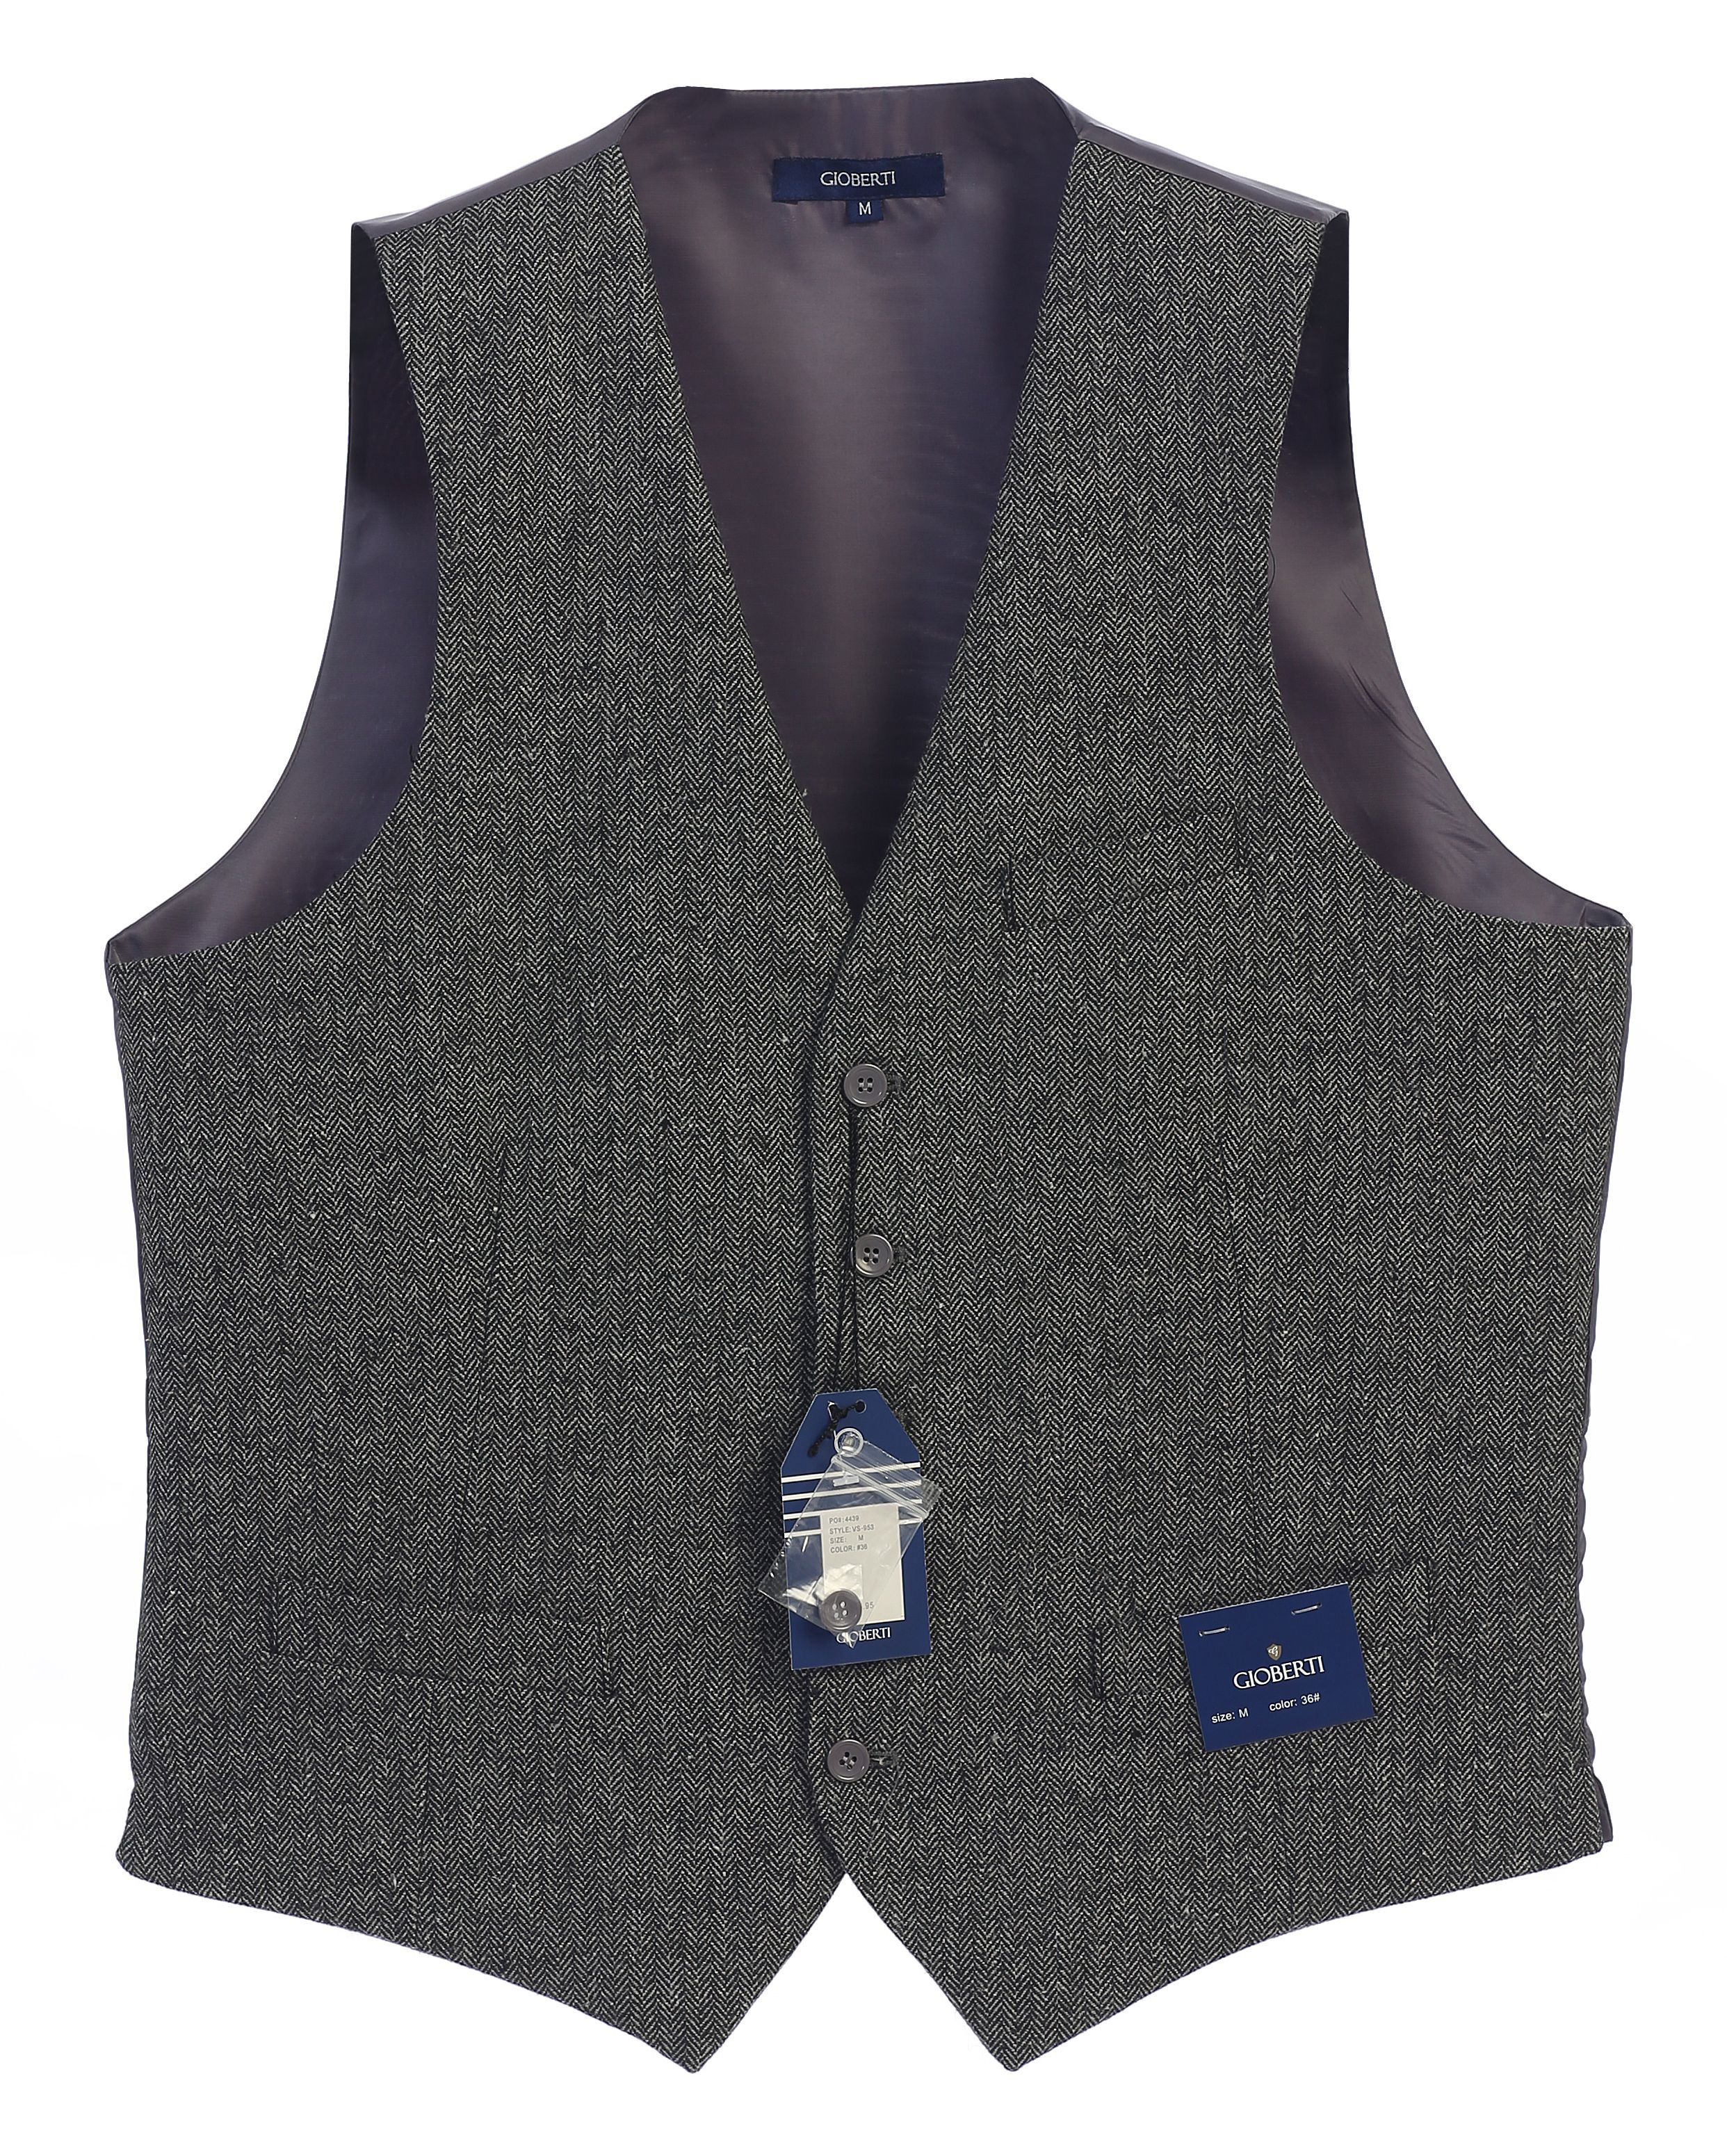 Gioberti Men's 5 Button Formal Casual Tweed Suit Vest